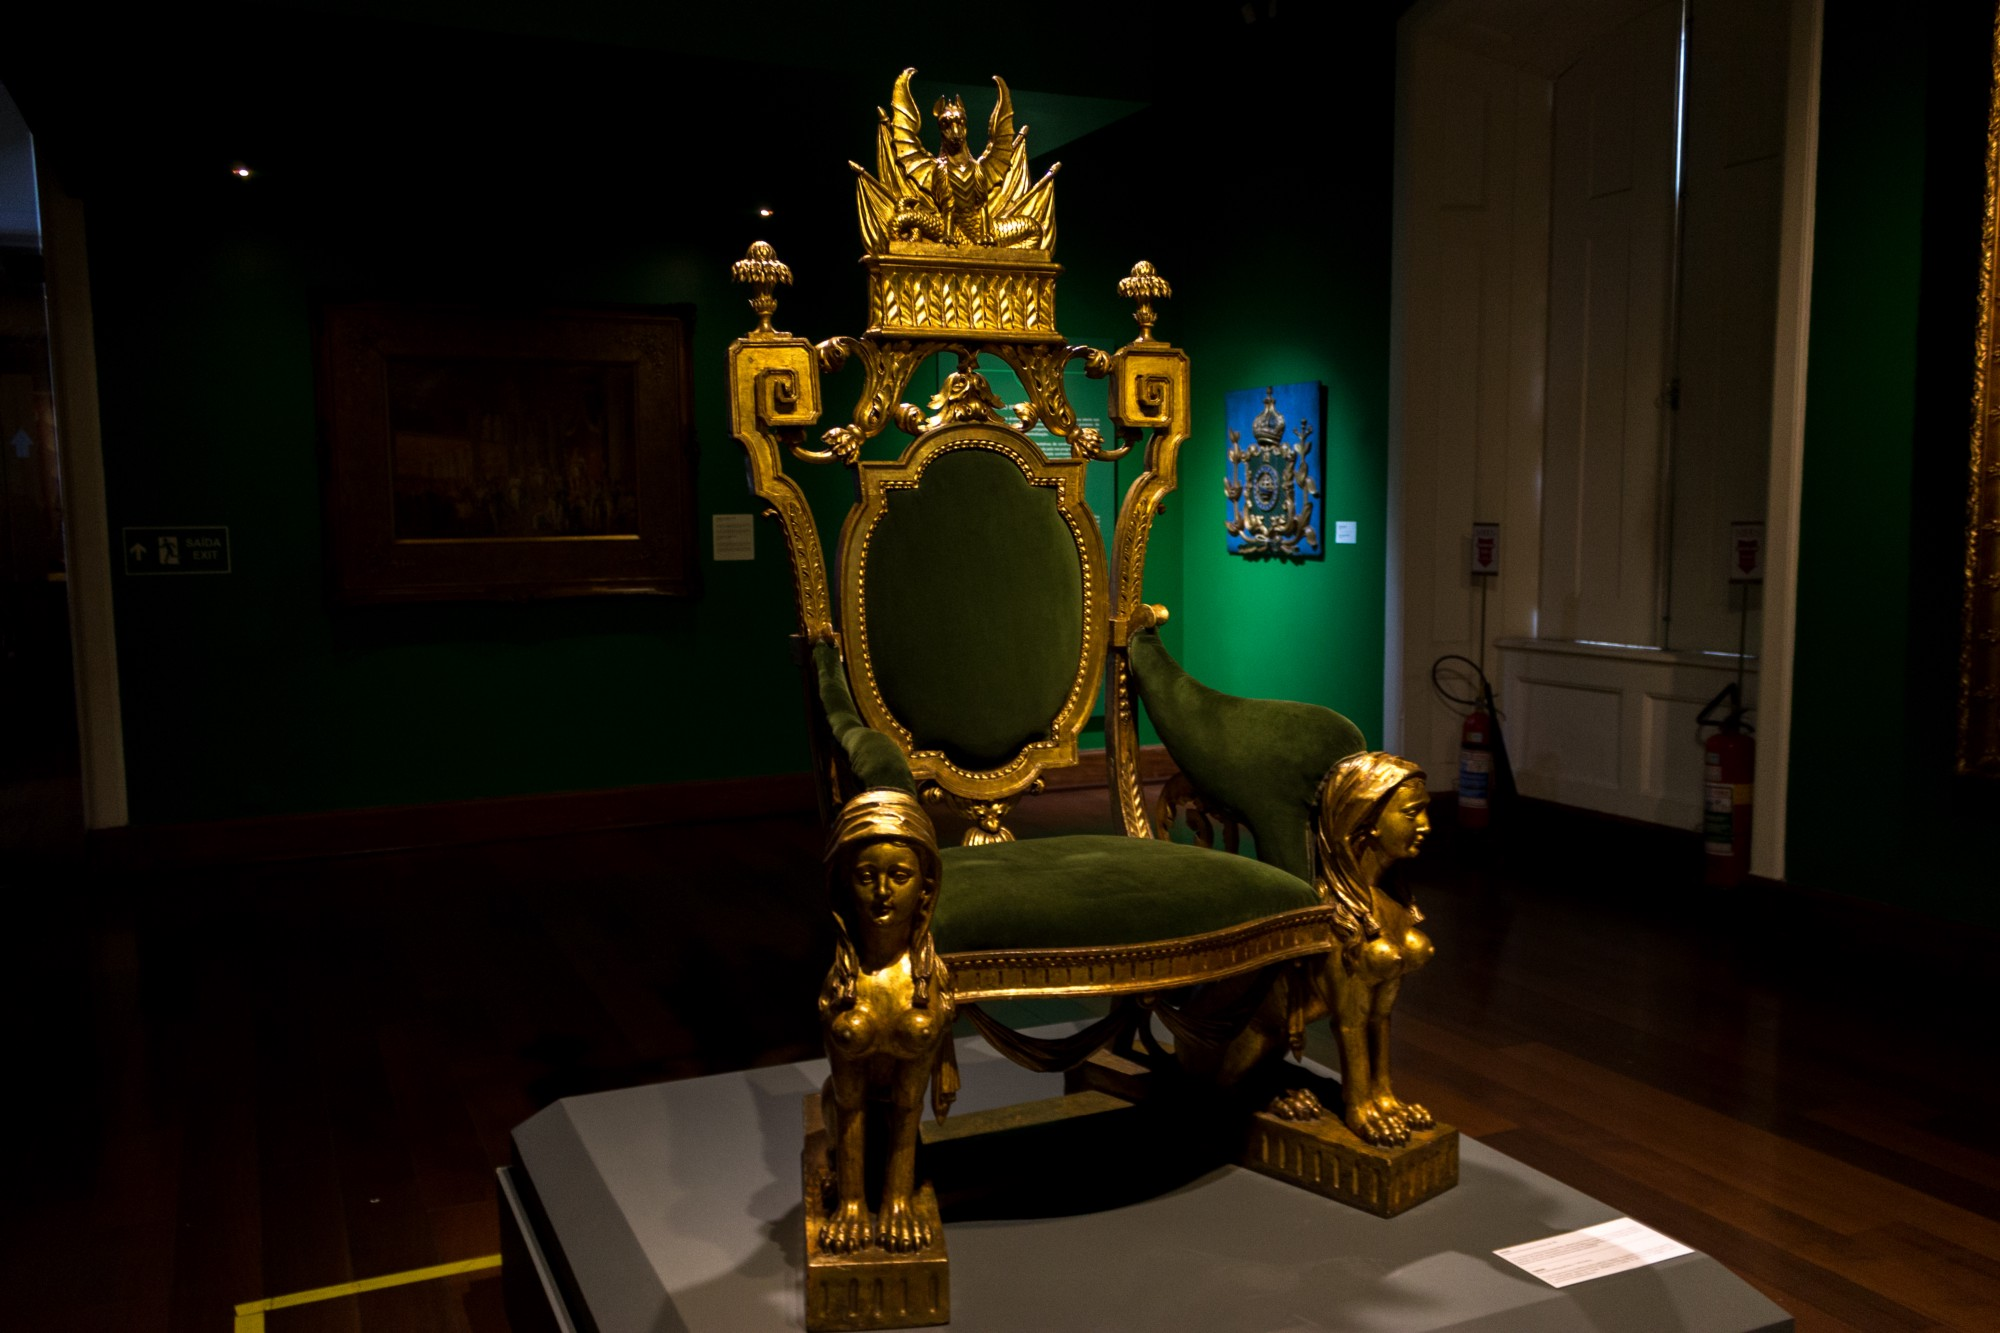 An antique throne